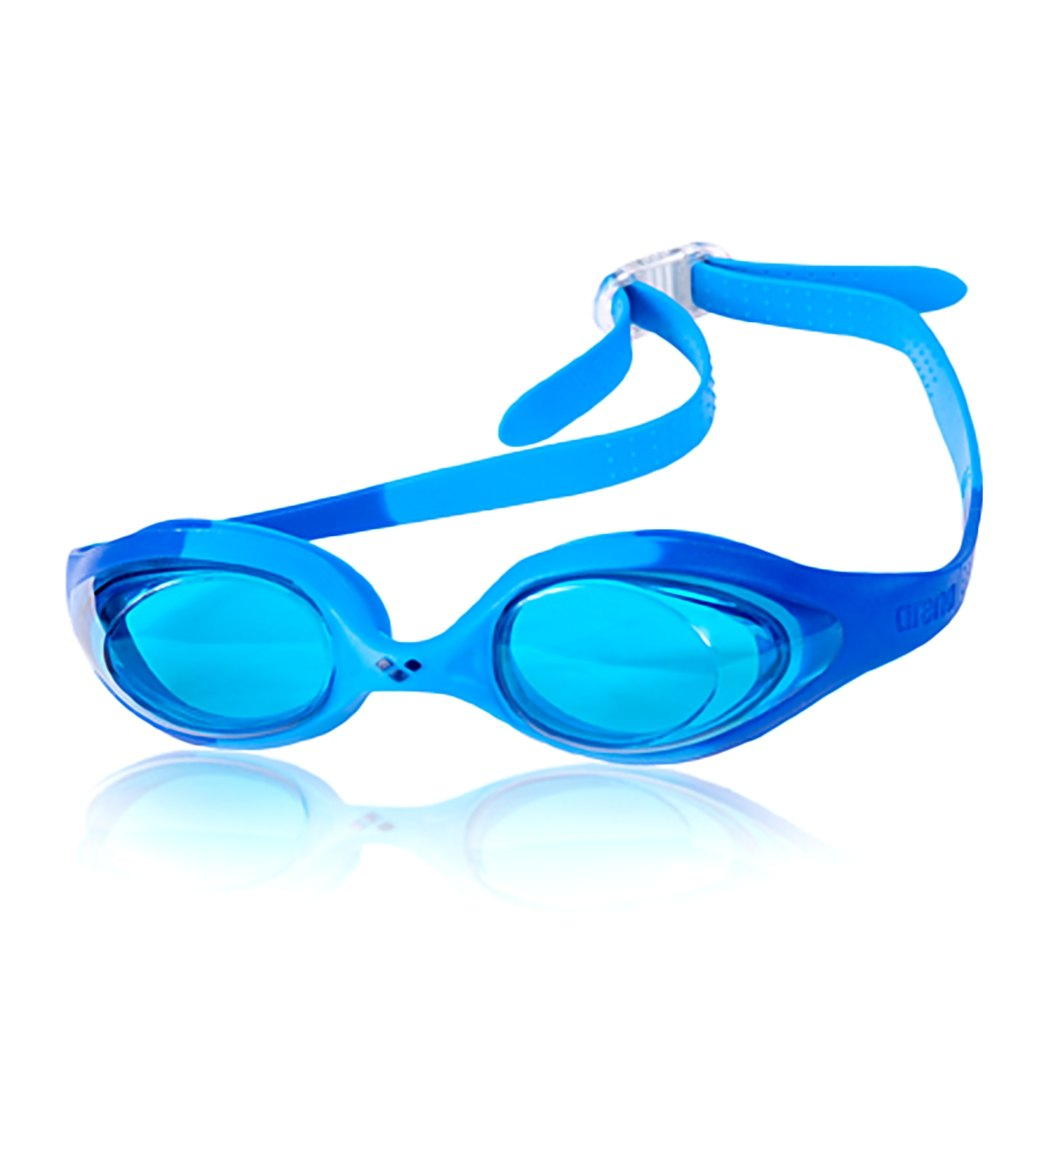 Arena Spider Jr. Toddler Swimming Goggles